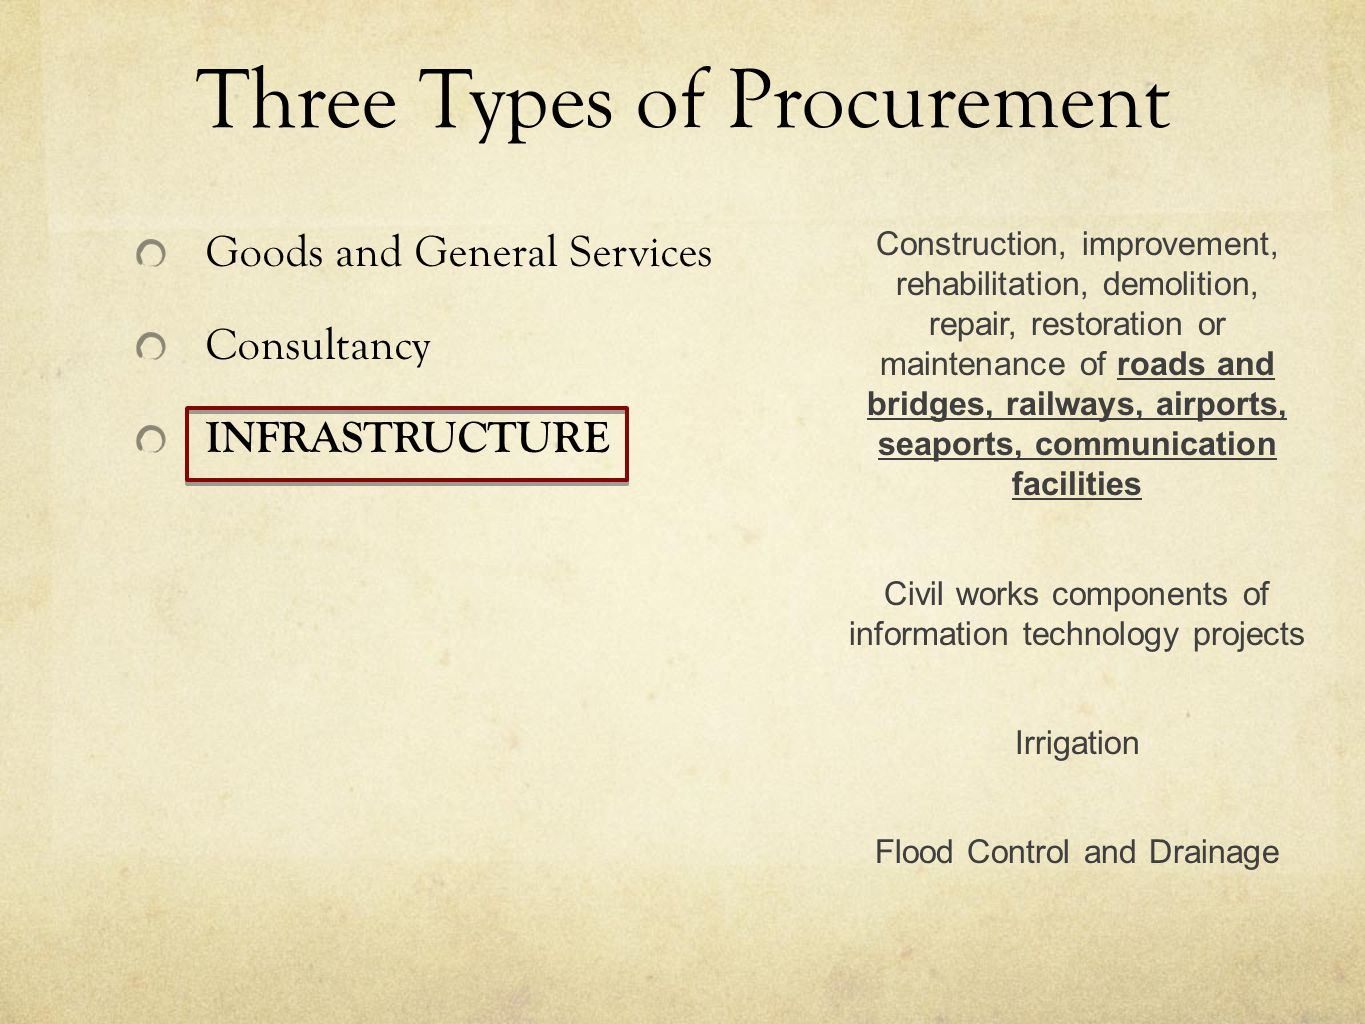 Goods and General Services Consultancy INFRASTRUCTURE Three Types of Procurement Construction, improvement, rehabilitation, demolition, repair, restoration or maintenance of roads and bridges, railways, airports, seaports, communication facilities Civil works components of information technology projects Irrigation Flood Control and Drainage